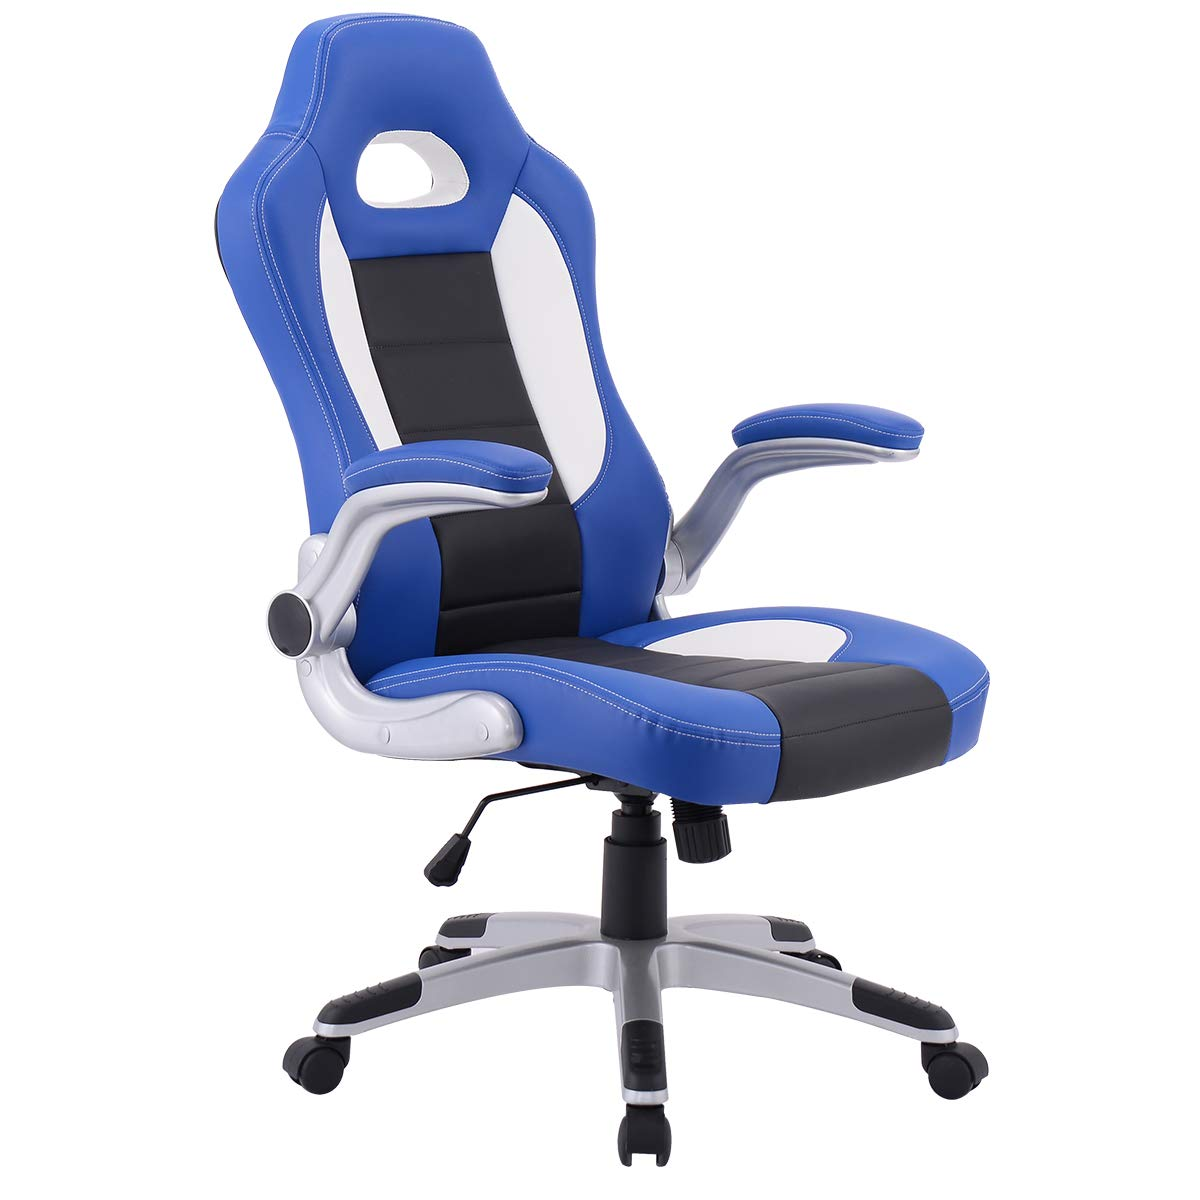 Giantex Ergonomic Gaming Chair High Back Leather Computer Executive Chair, Racing Style Bucket Seat Adjustable Swivel Chair, Office Desk Chair Video Game Chairs w/Armrest (Blue) by Giantex